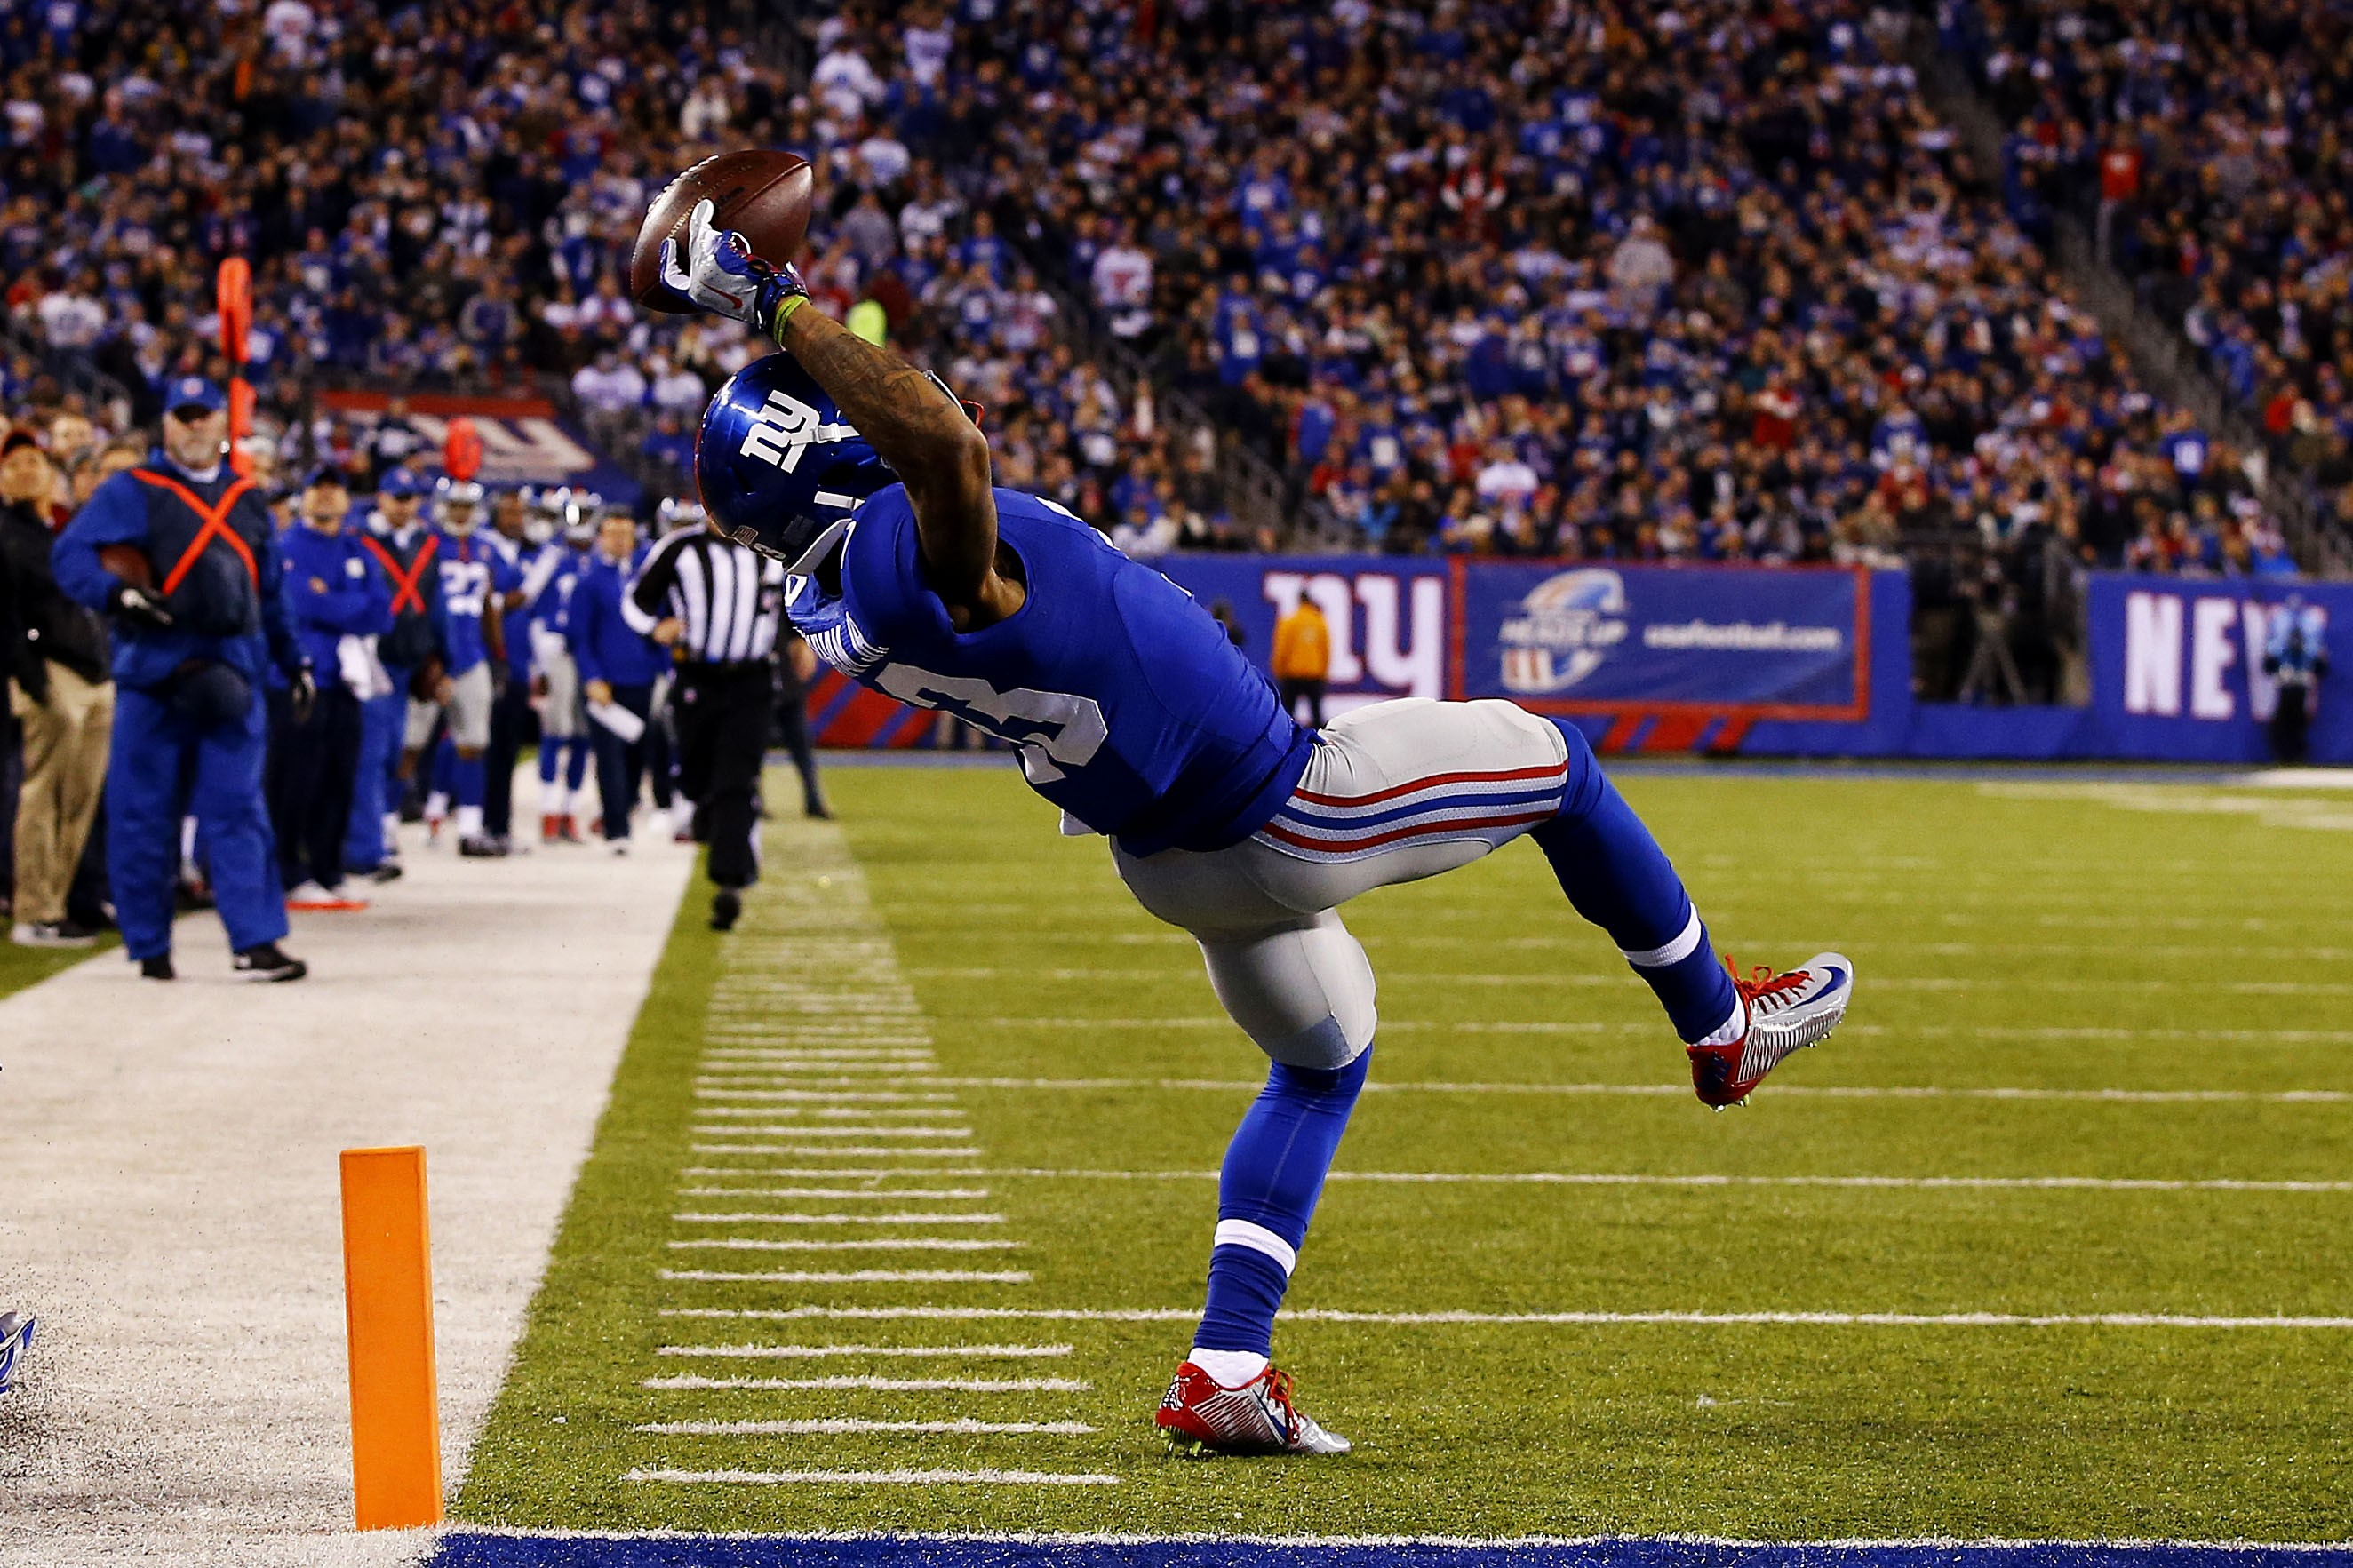 odell beckham wallpaper download free full hd wallpapers for